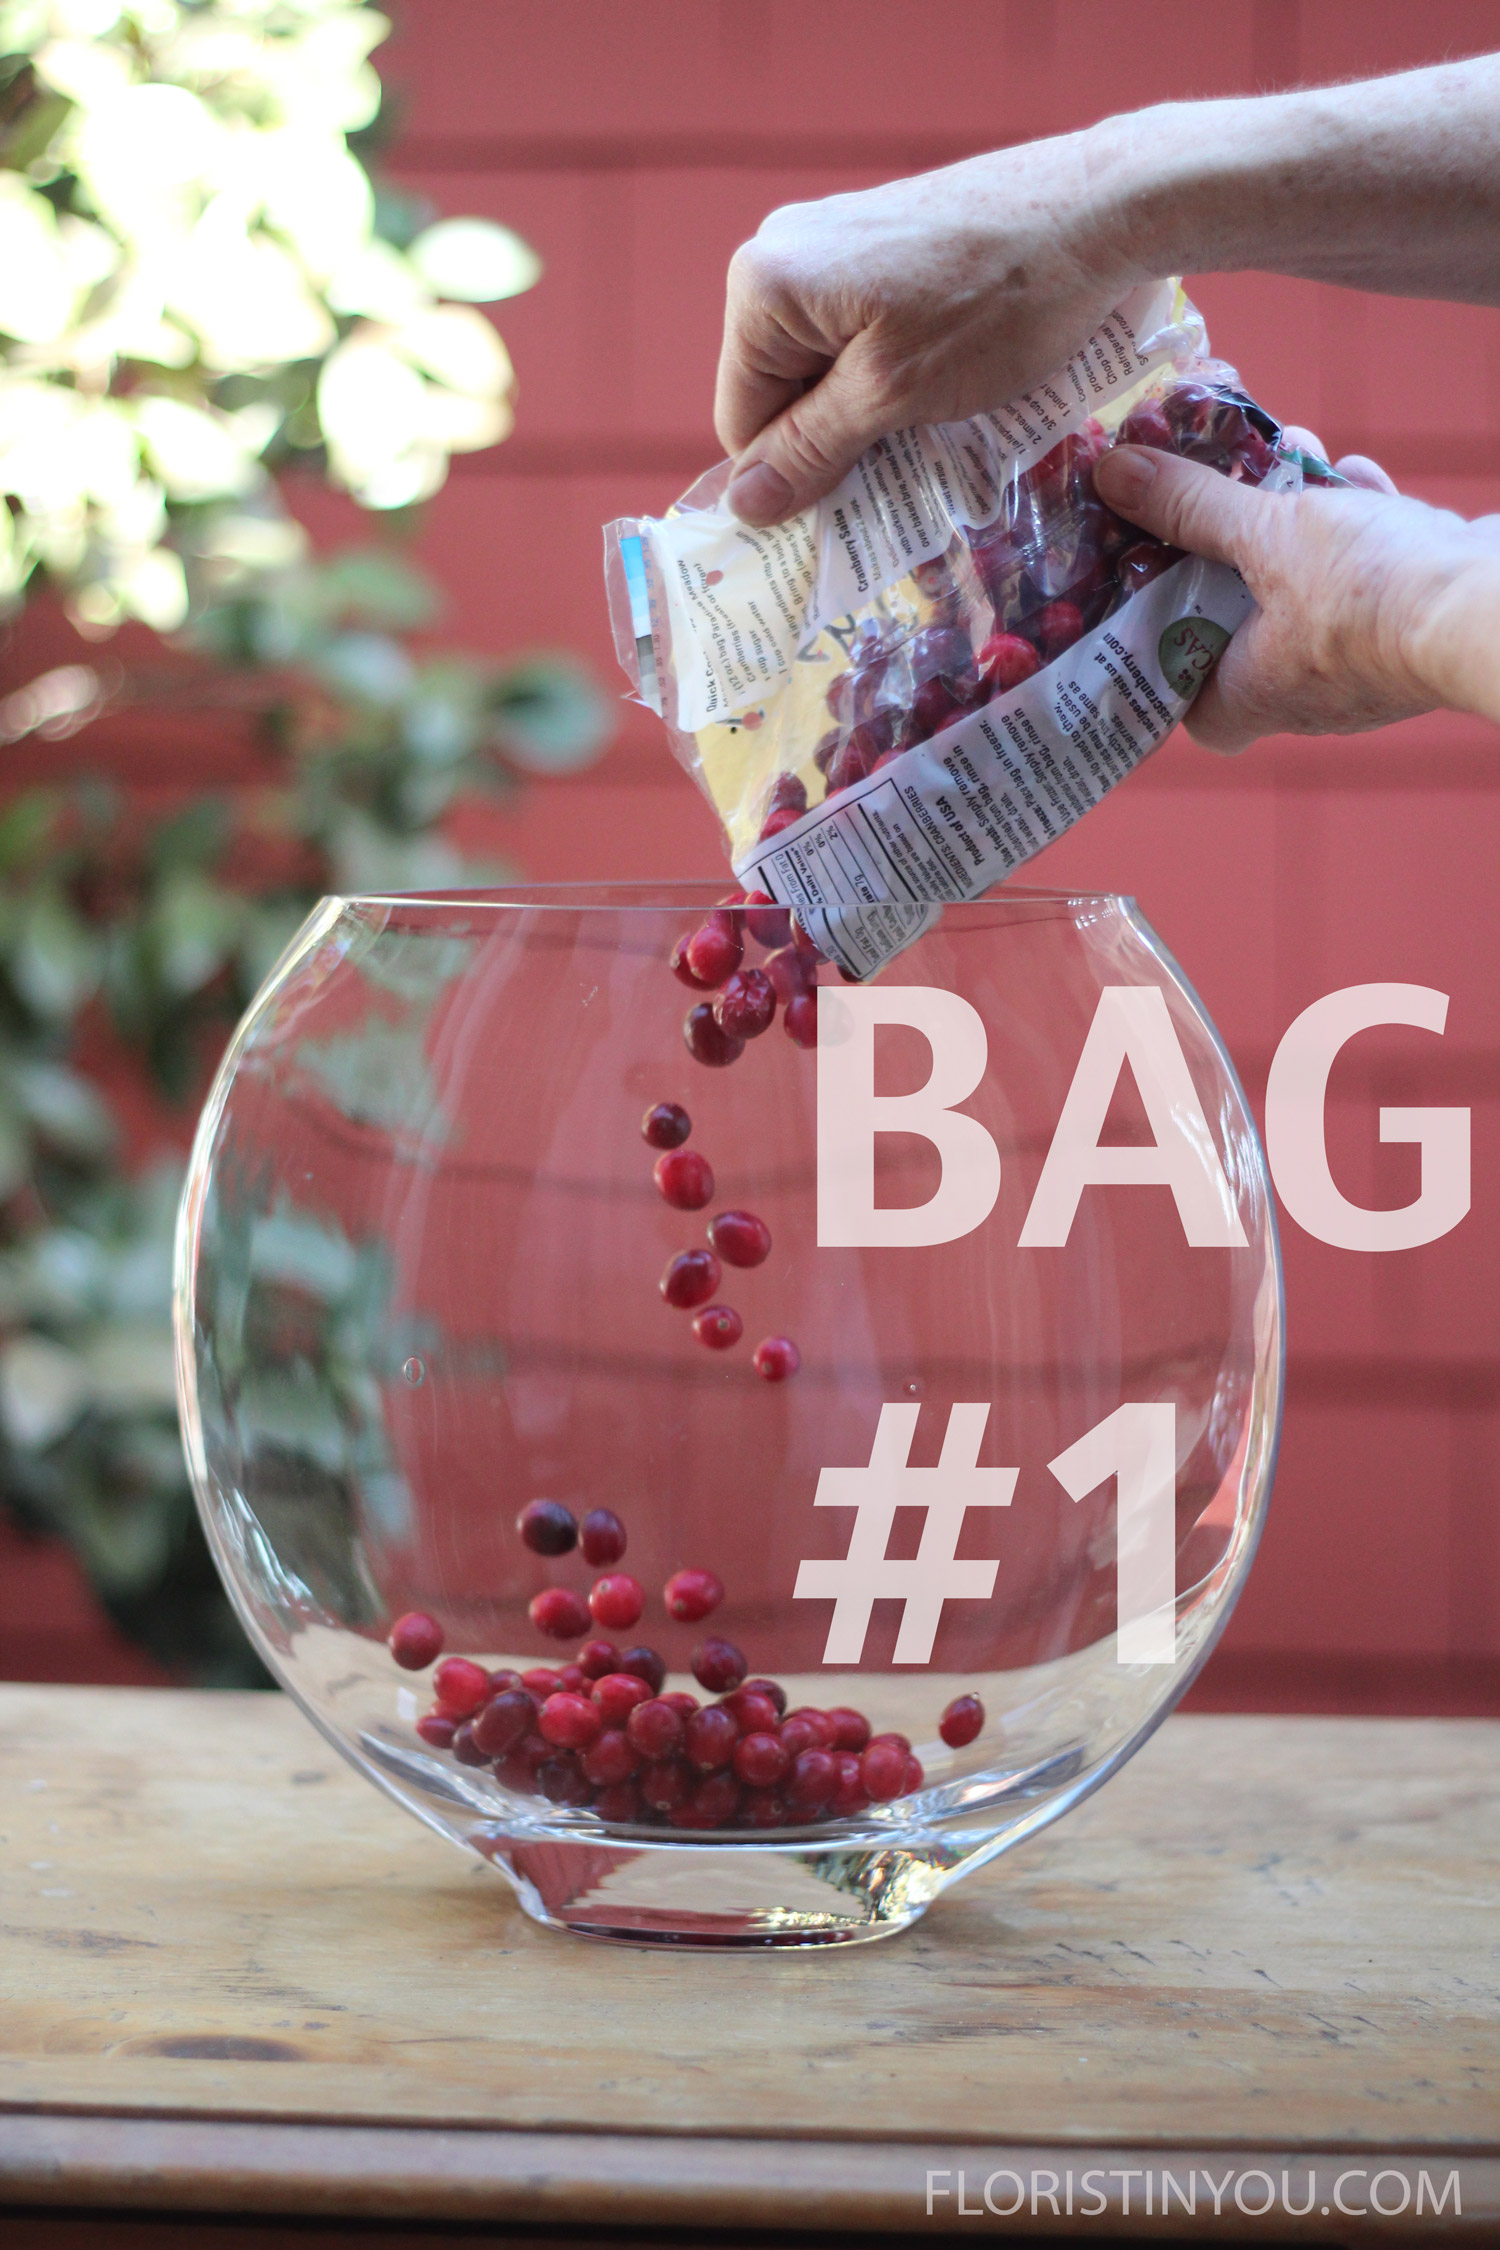 Fill your vase with two12 ounce bags of fresh cranberries.